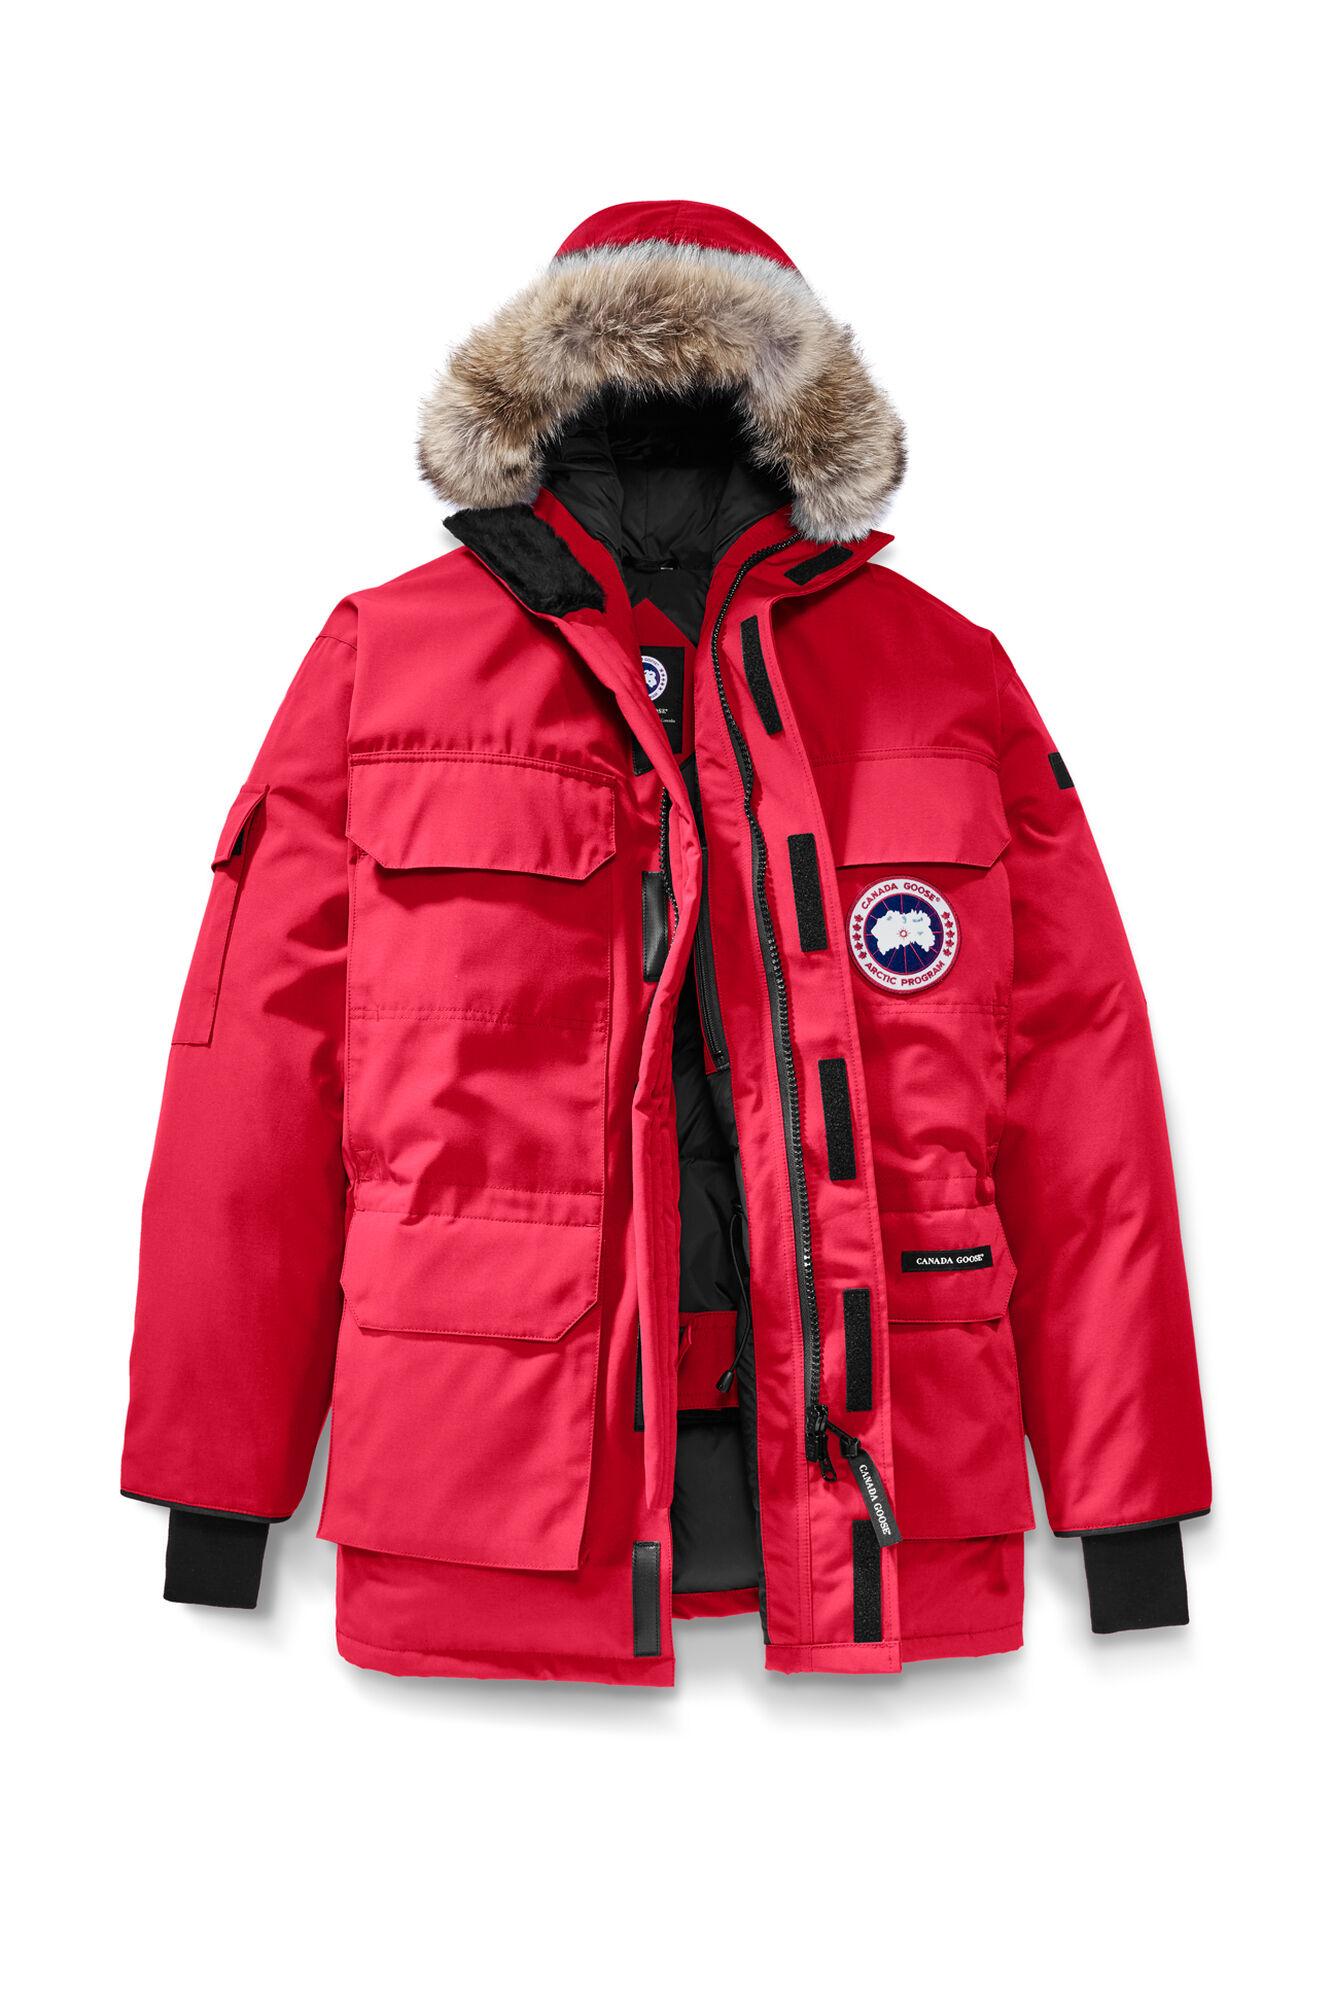 Canada Goose coats outlet price - Men's Arctic Program Expedition Parka | Canada Goose?